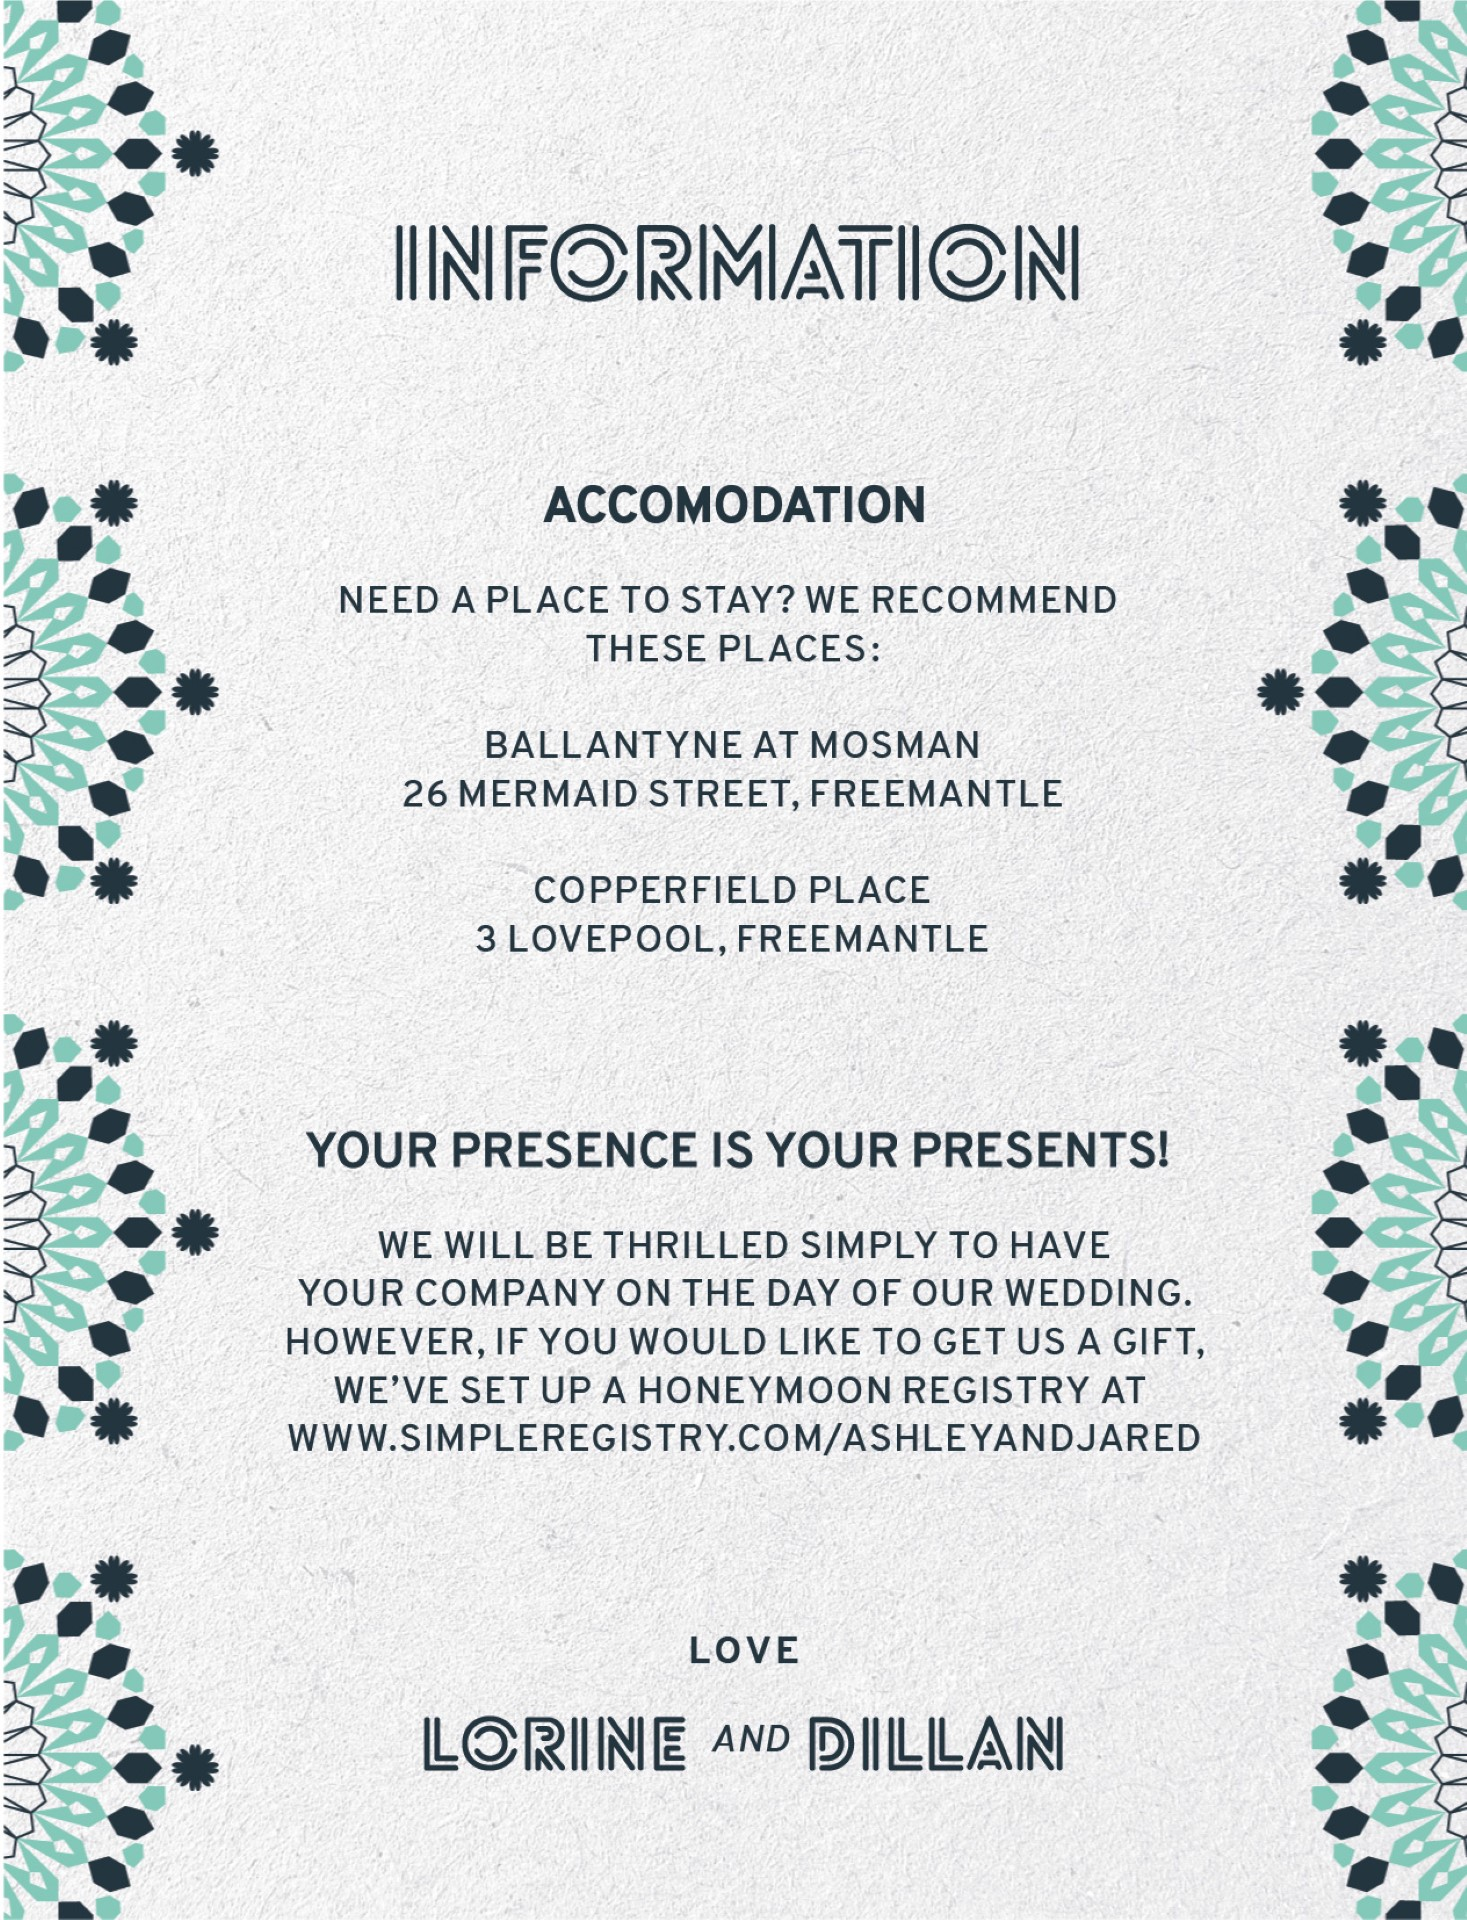 Kaleidoskop - Information Card